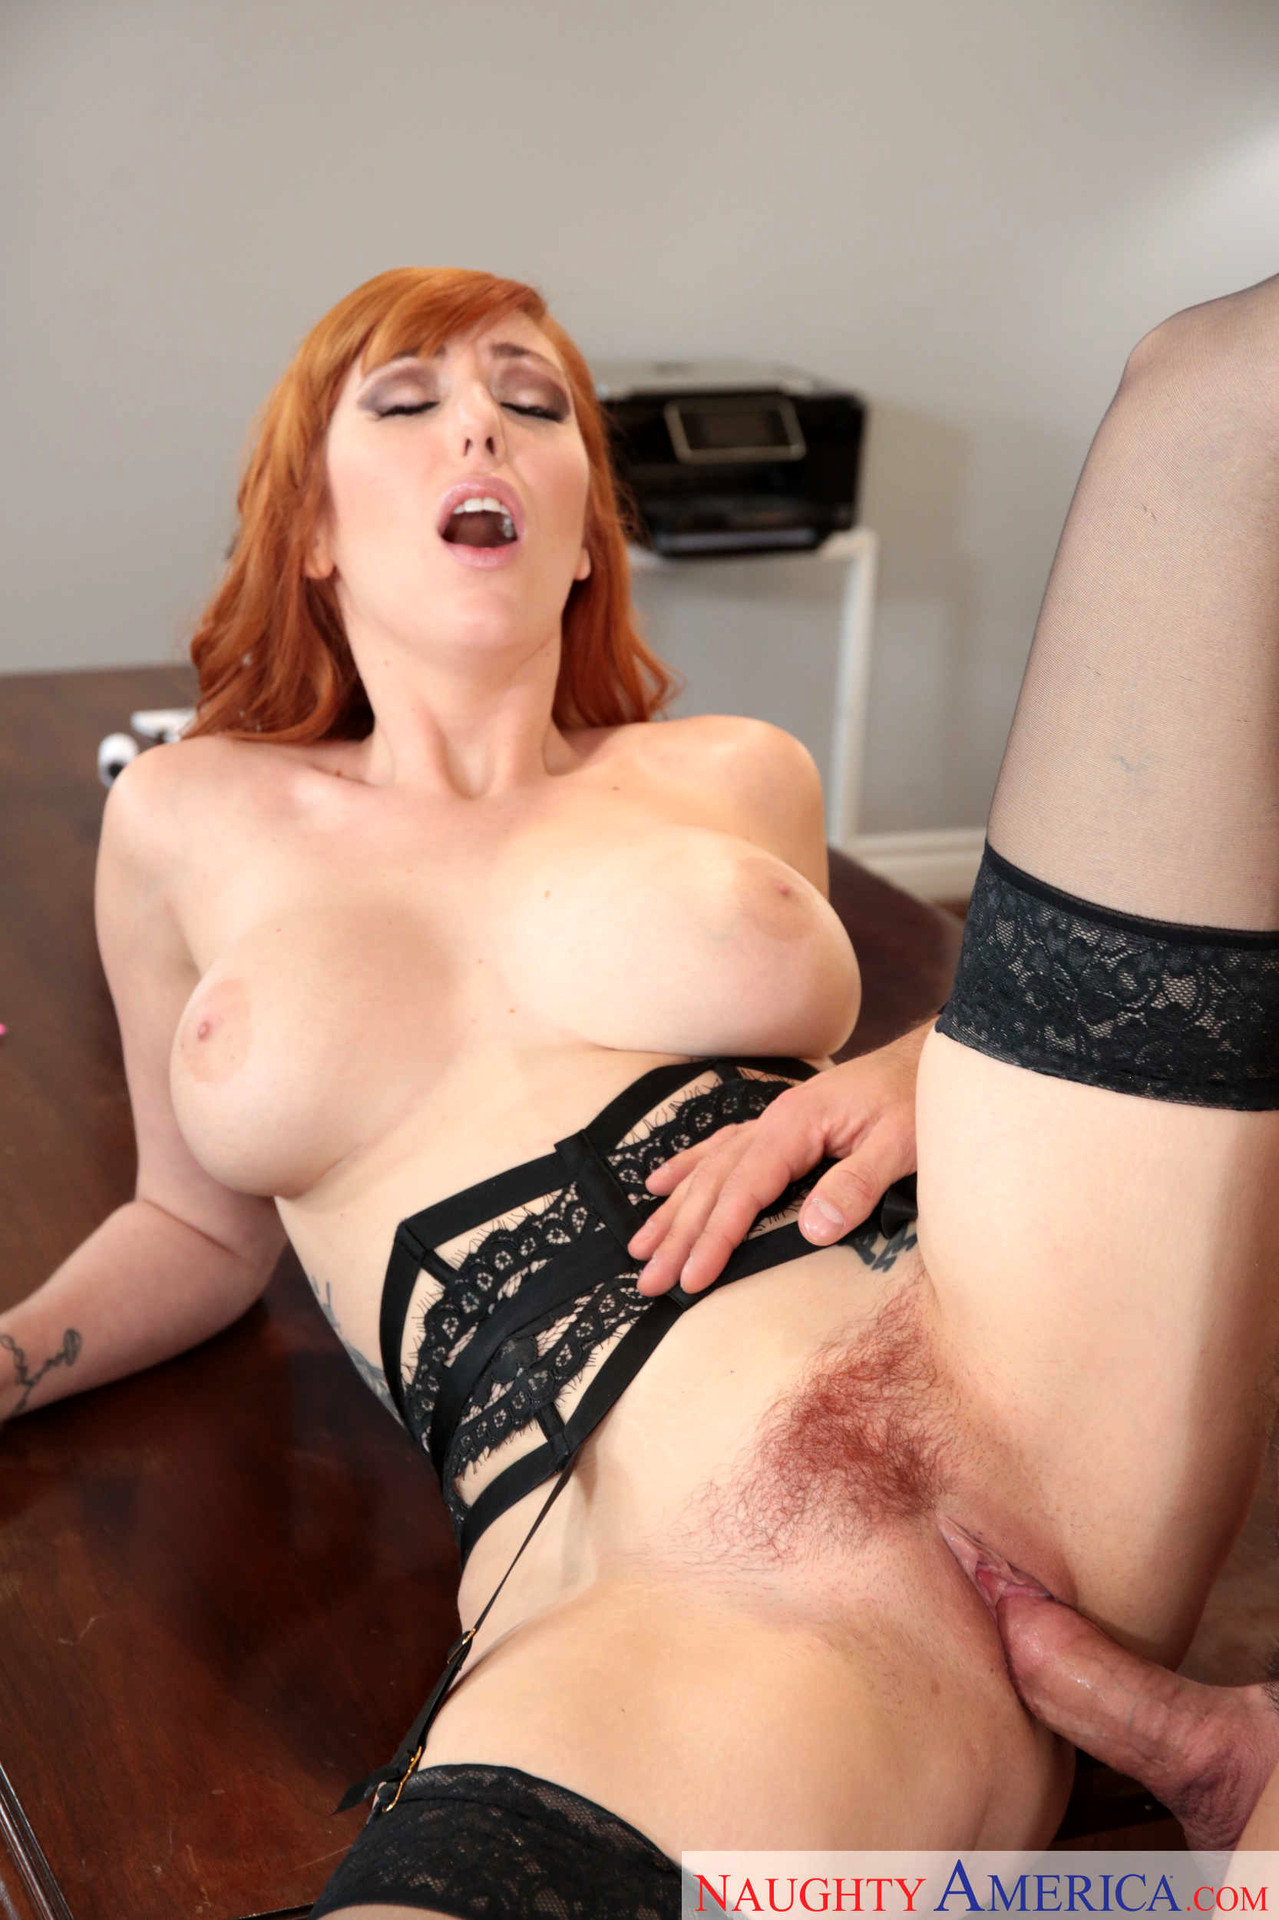 www naughty america porn video com